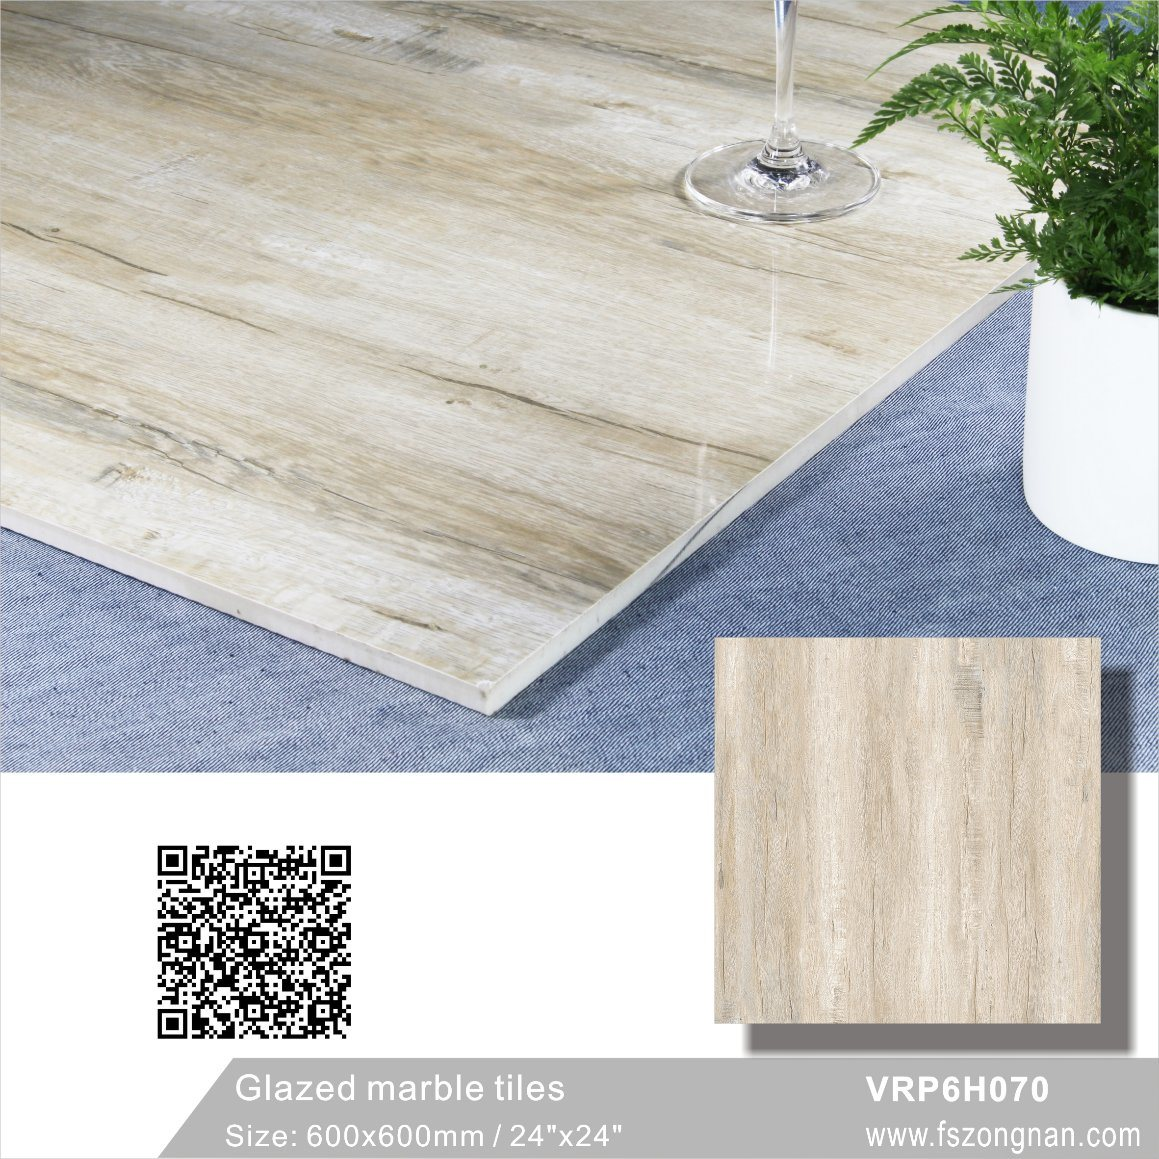 China glazed marble polished porcelain bathroom wall tile vrp6h070 china glazed marble polished porcelain bathroom wall tile vrp6h070 china floor tiles bathroom tile dailygadgetfo Choice Image